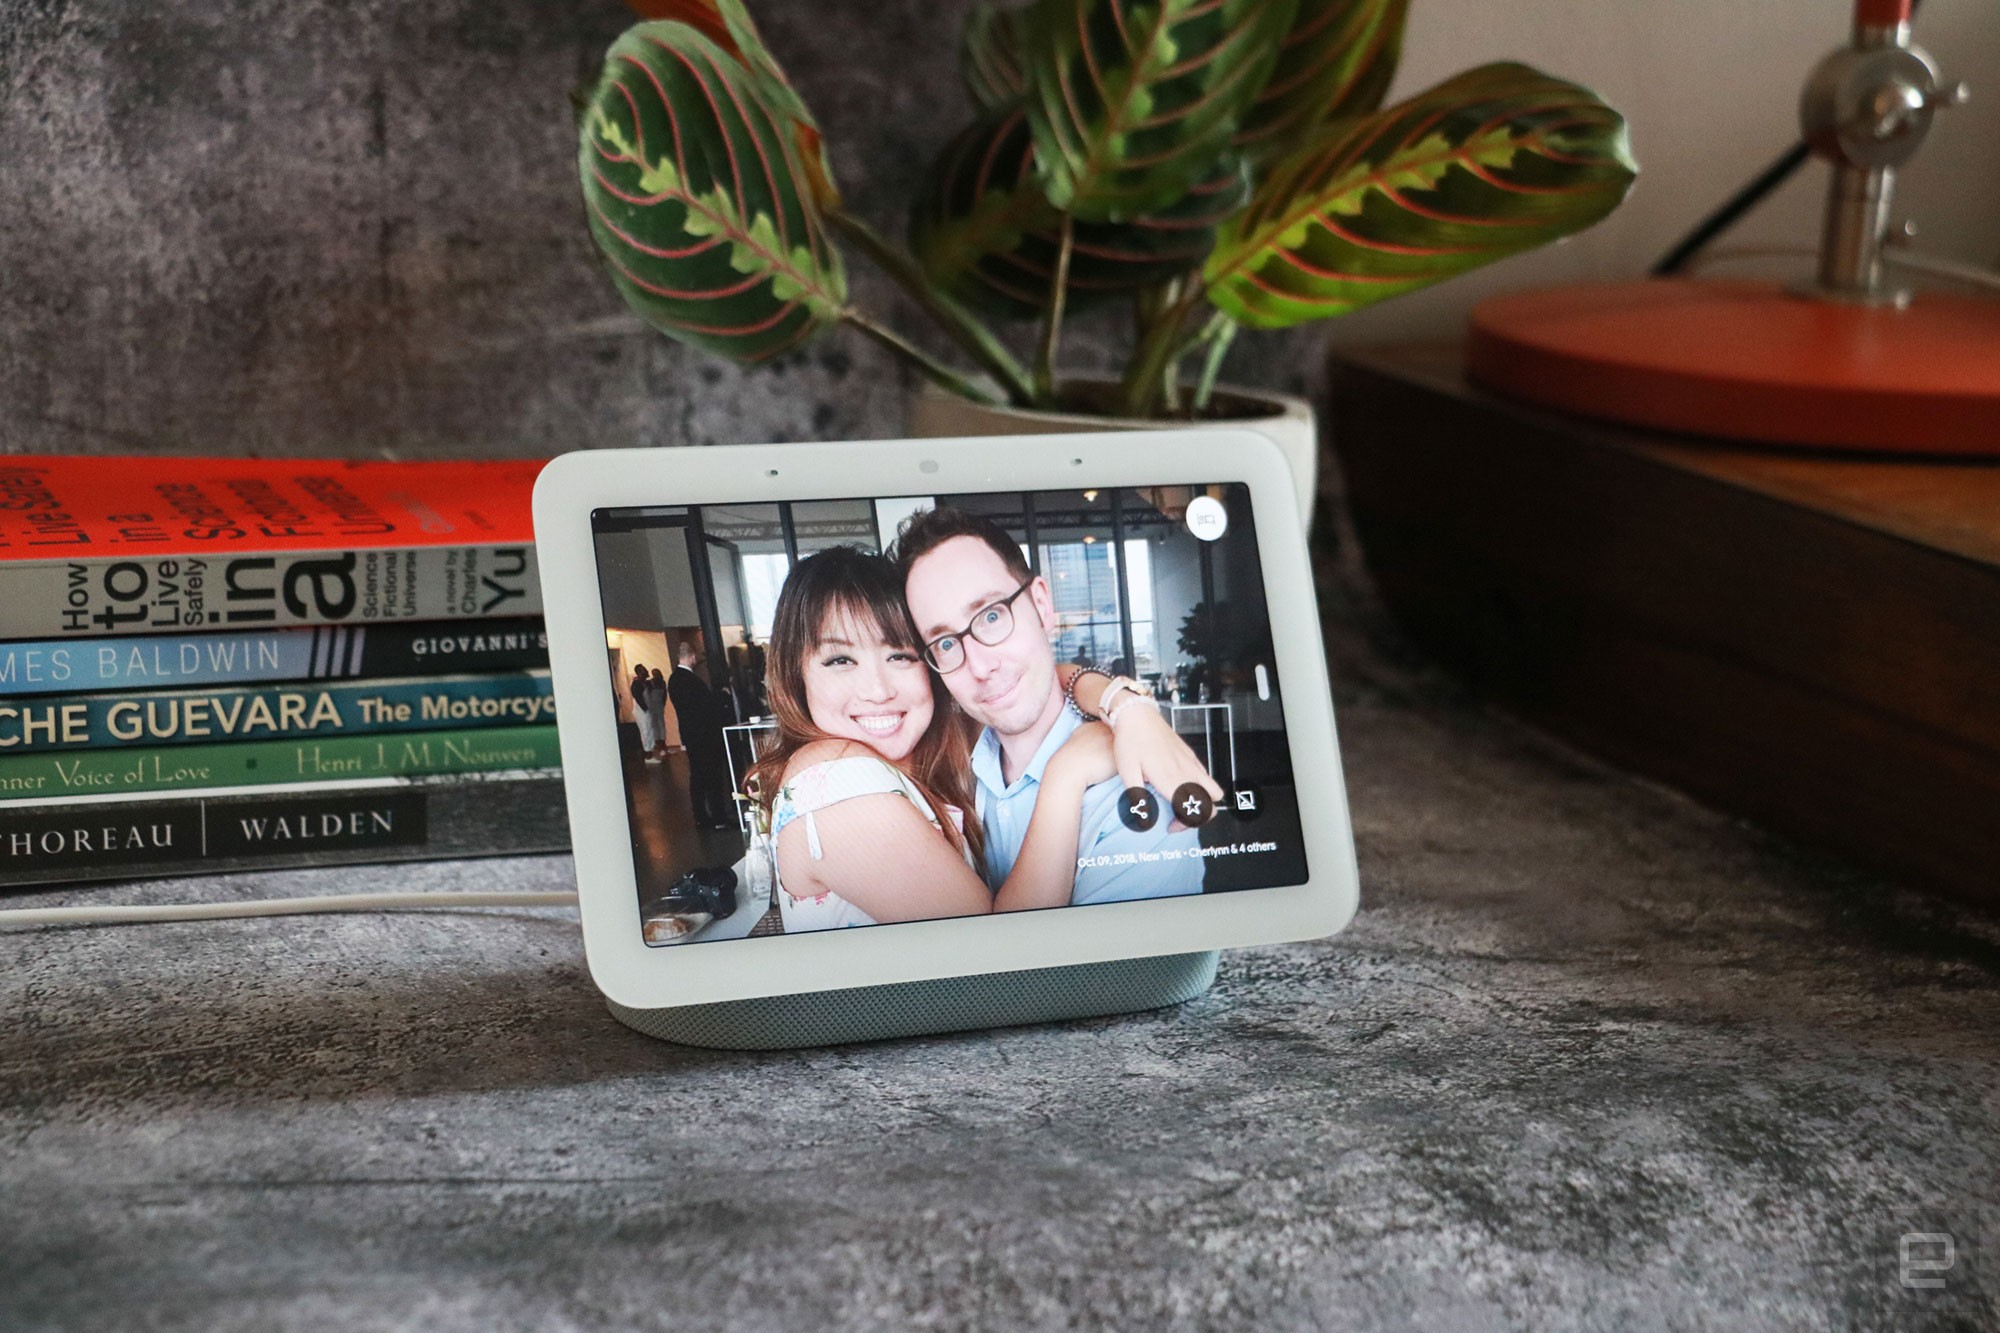 <p>Google Nest Hub 2021 (2nd gen) photo. Picture of Google's newest smart display on a table with books and a plant in the background.</p>